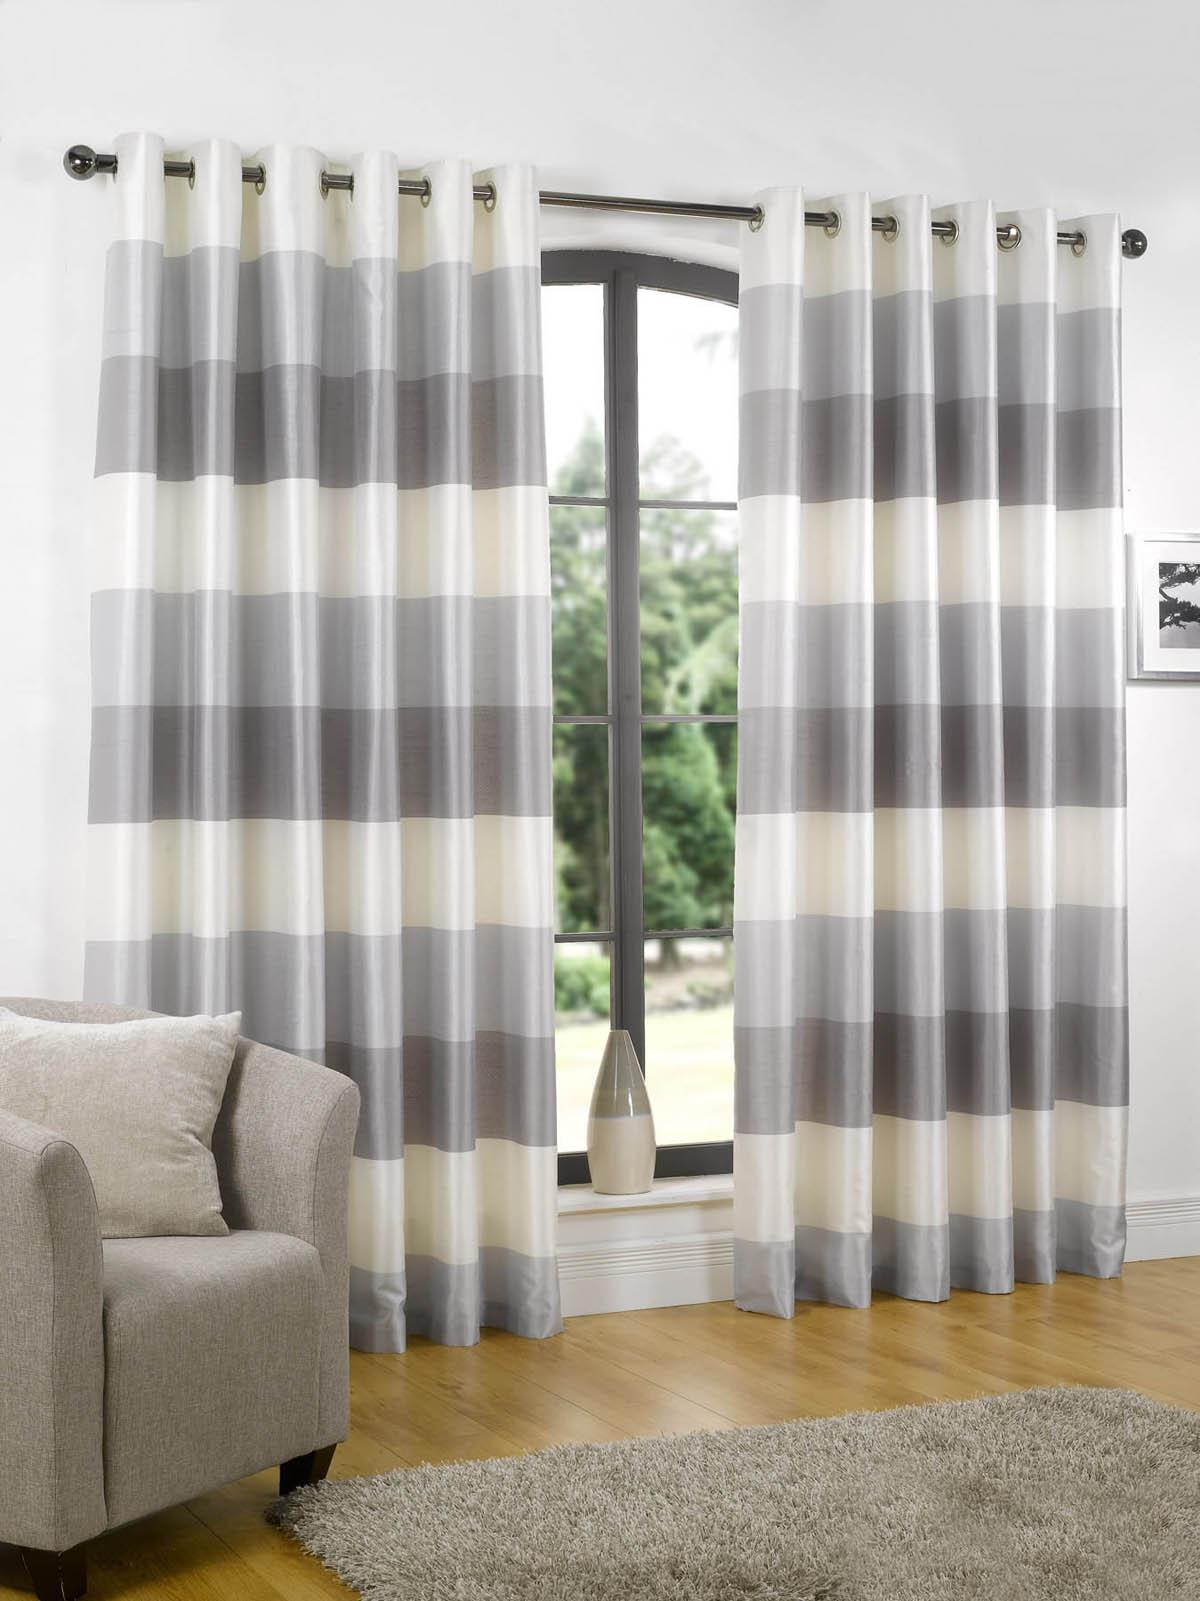 Pewter curtains